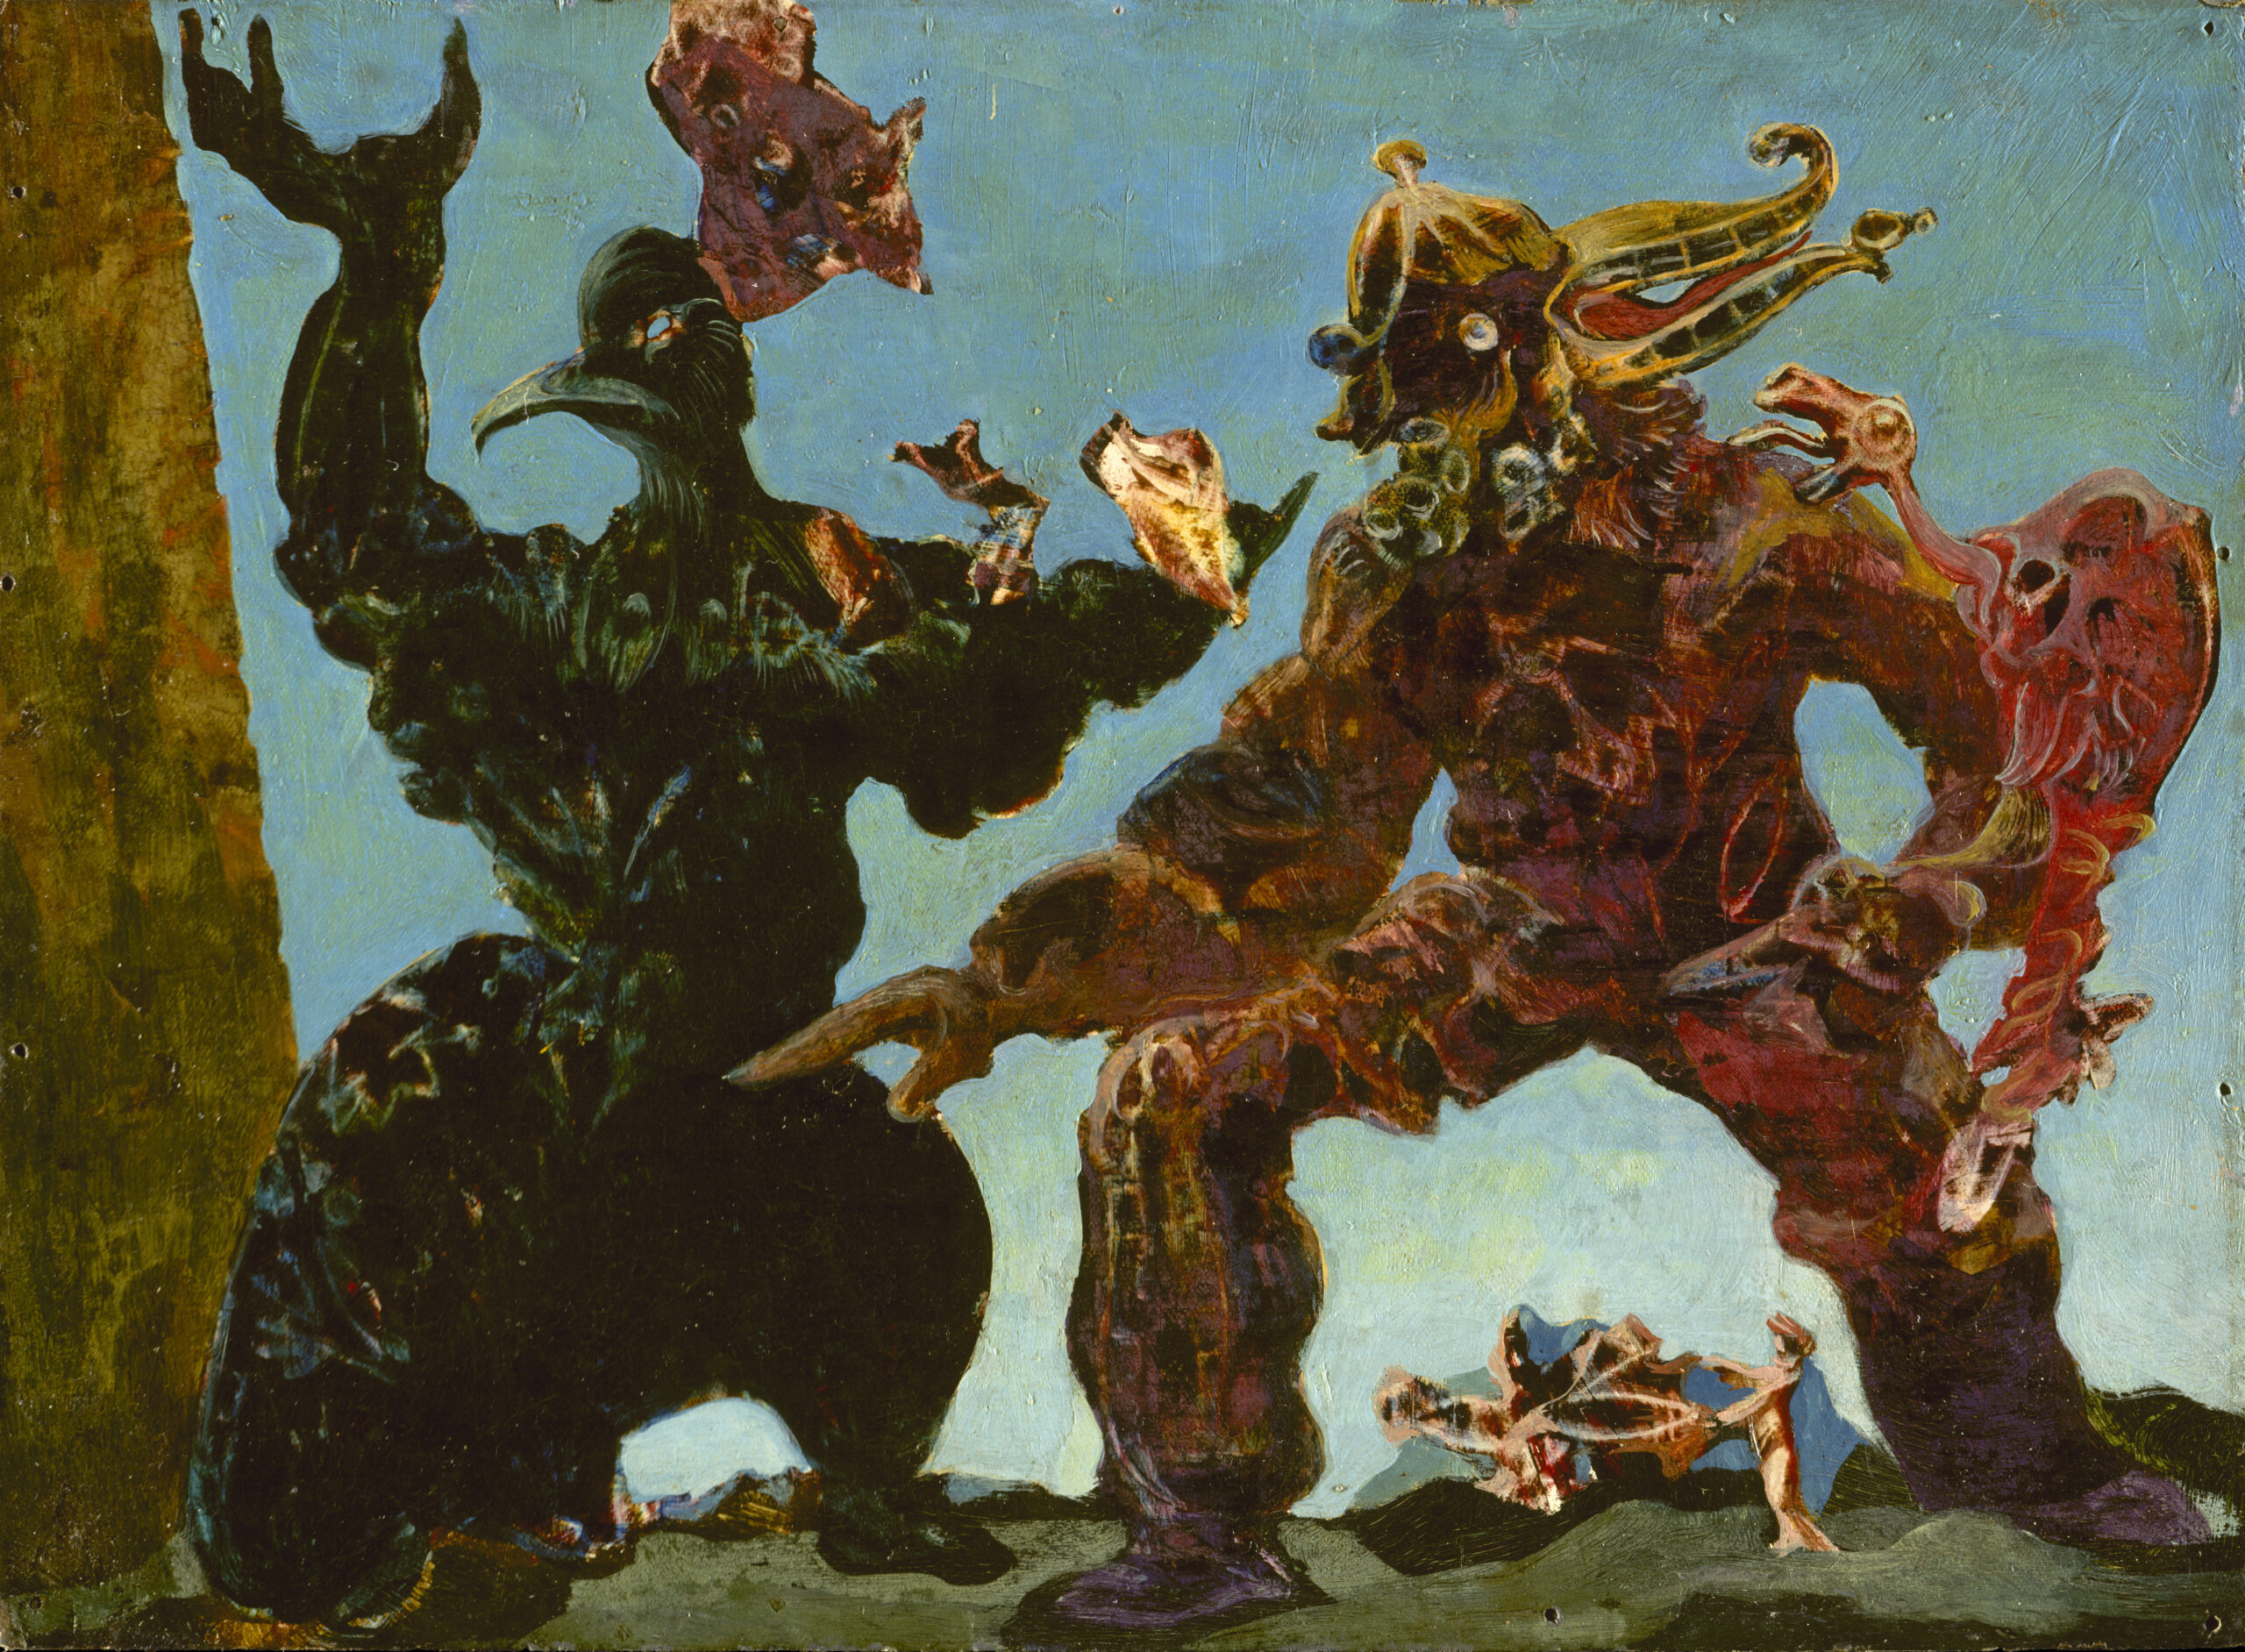 Max Ernst. The Barbarians. 1937. Lent by The Metropolitan Museum of Art, Jacques and Natasha Gelman Collection, 1998 (1999.363.21). © Artists Rights Society (ARS), New York / ADAGP, Paris